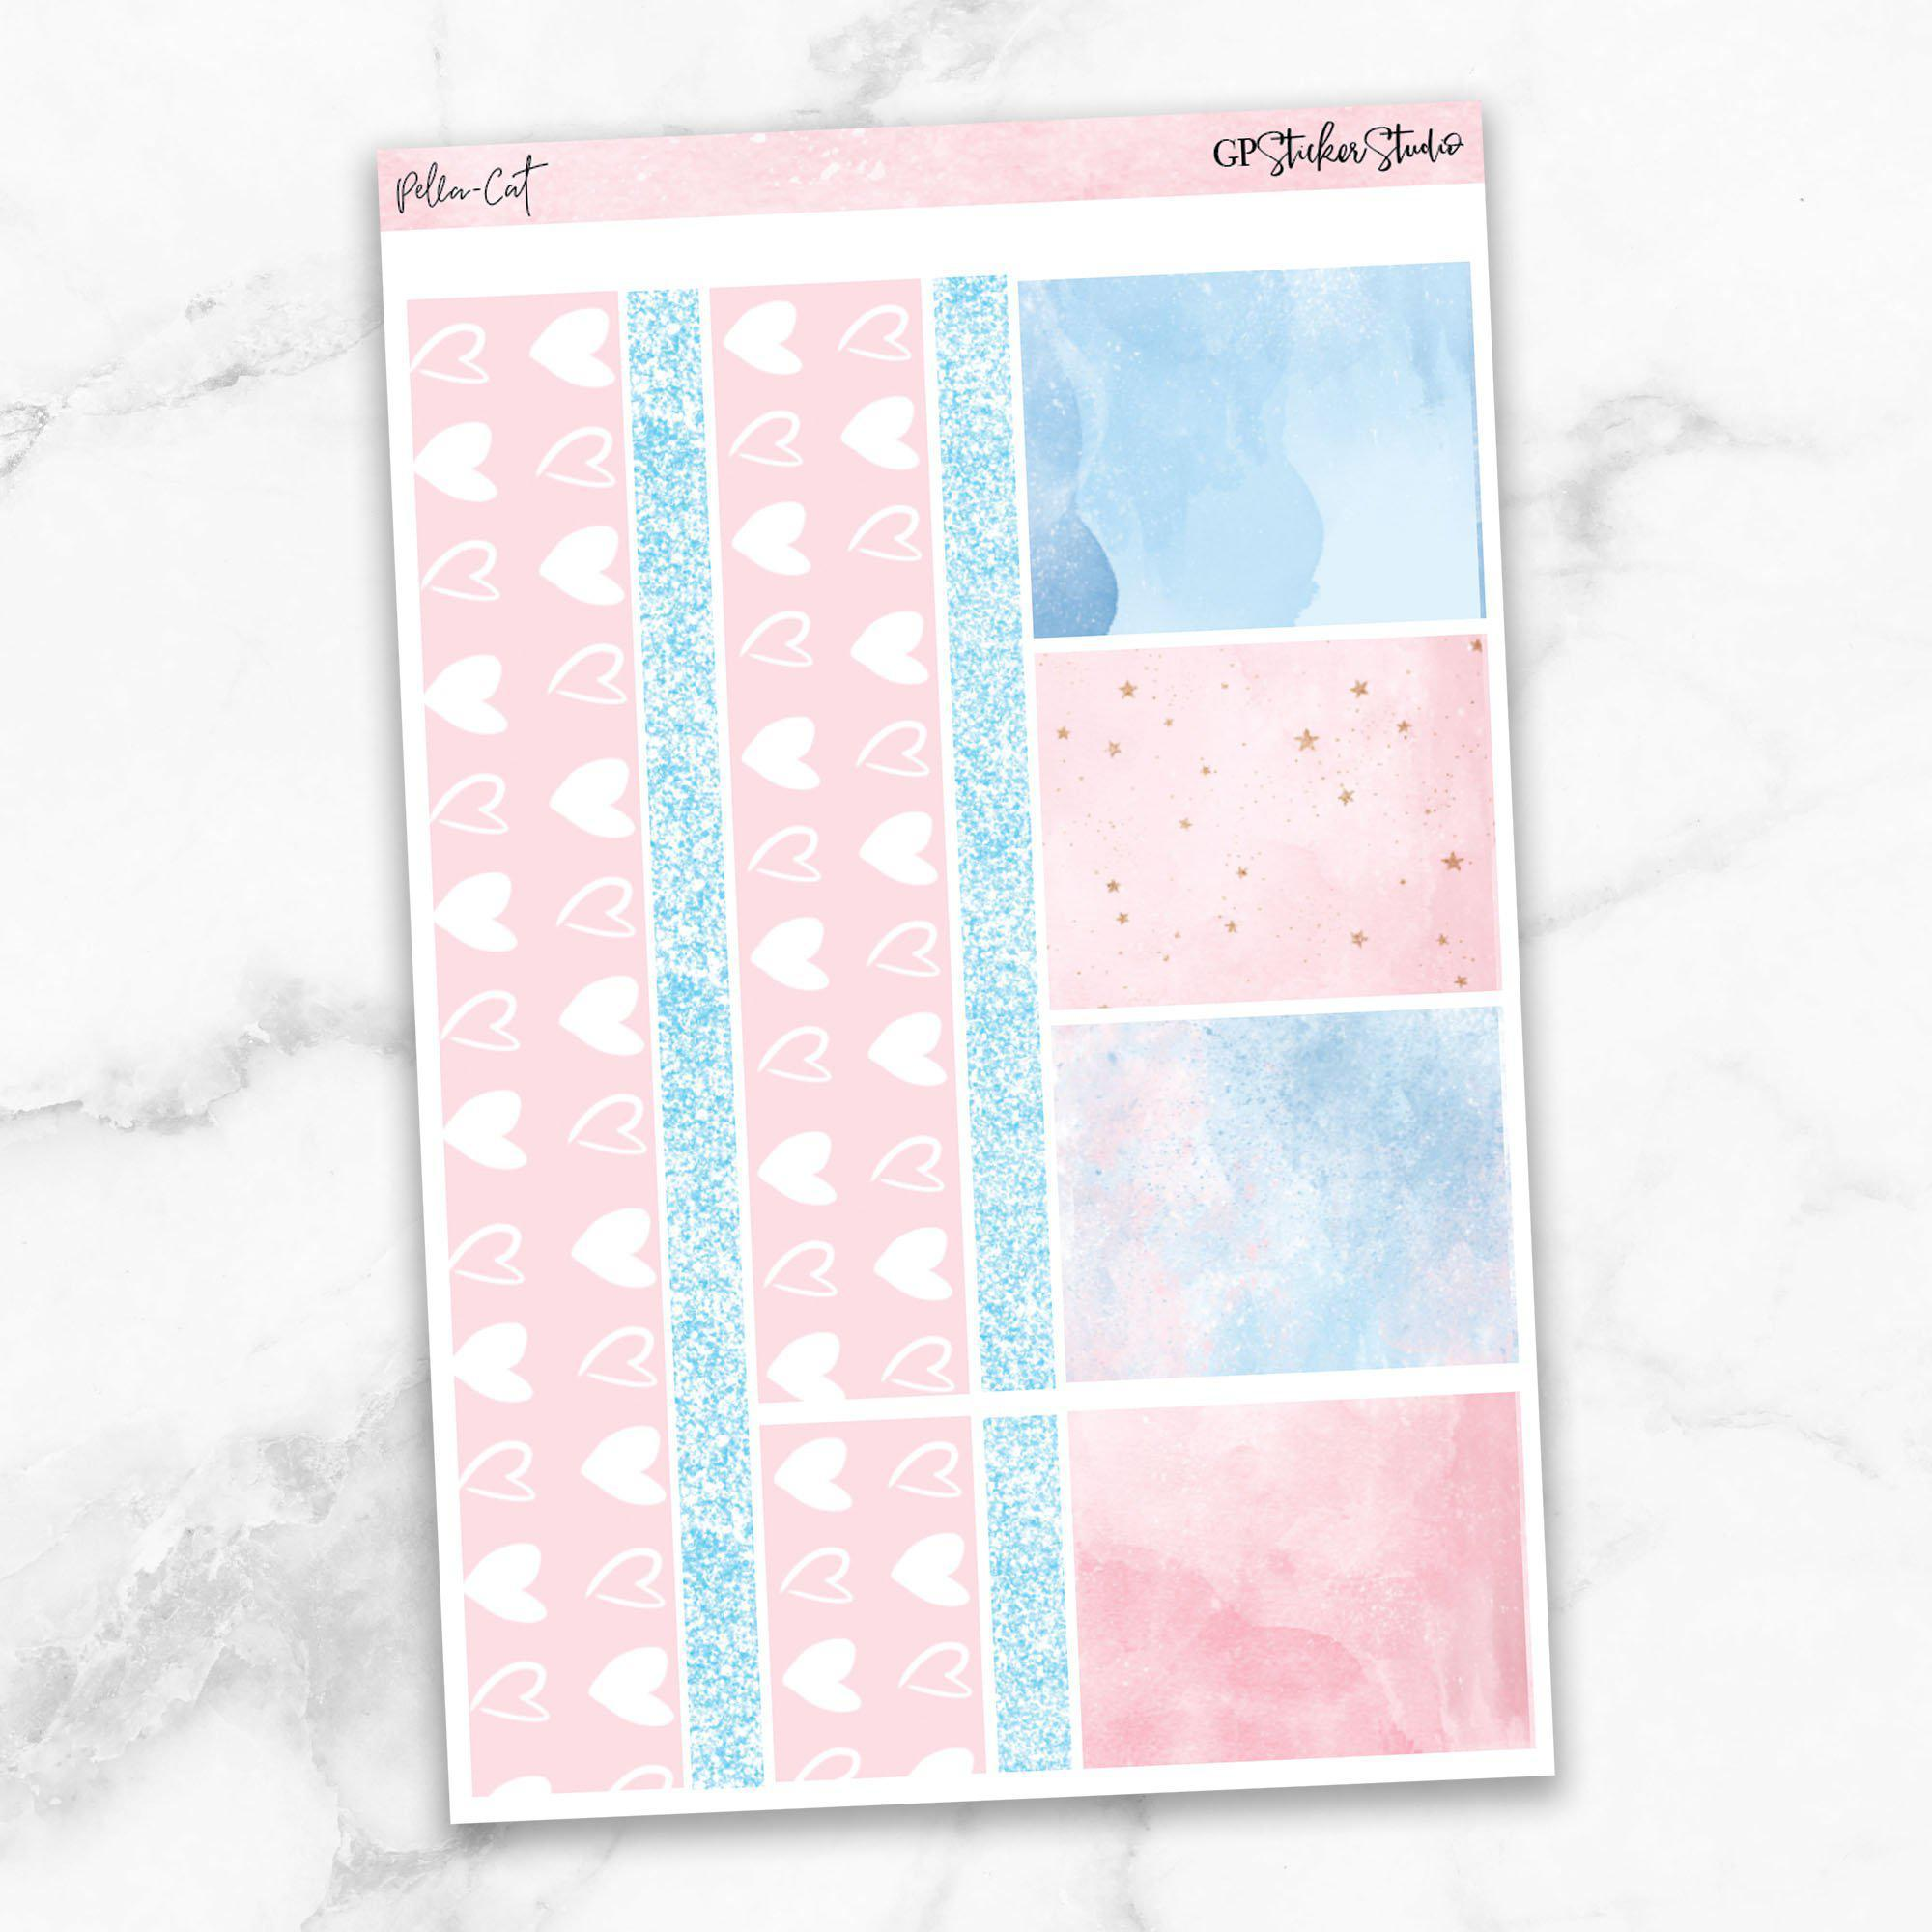 PELLA CAT KIT Washi Sheet Stickers-The GP Studio